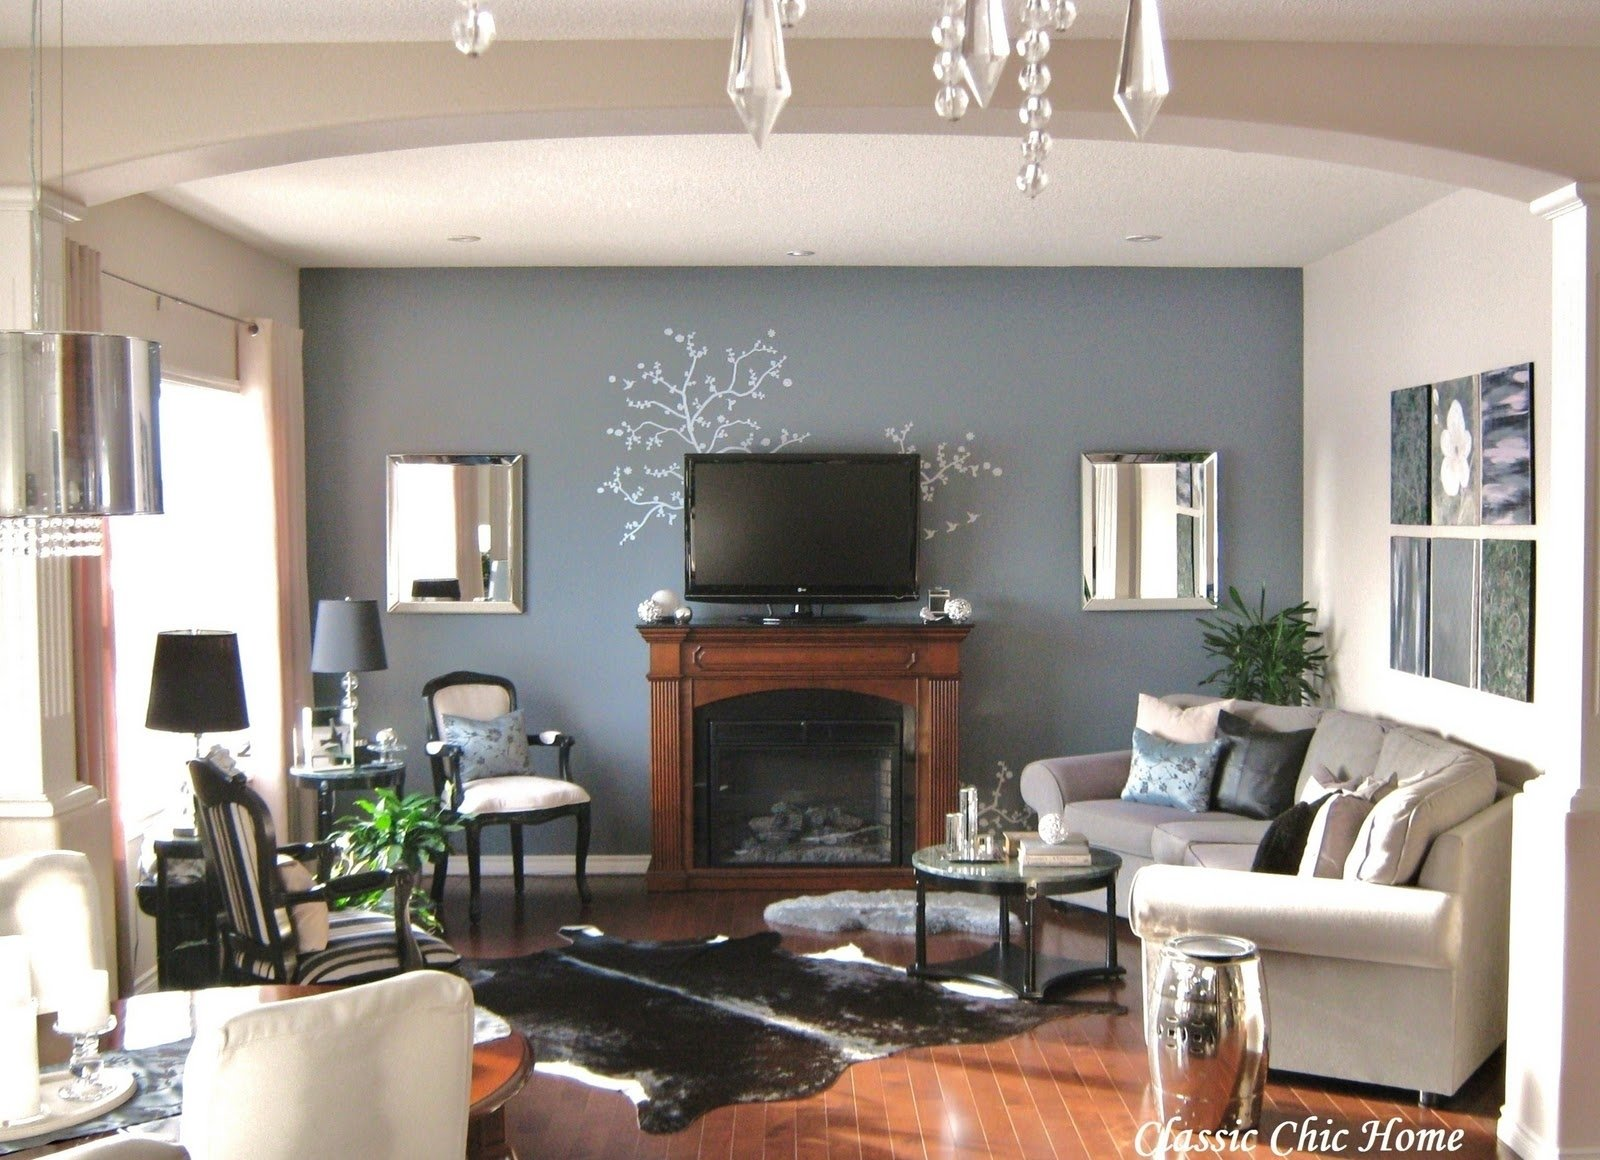 10 Lovely Living Room With Fireplace Ideas living room with fireplace design ideas fireplace design ideas 1 2020